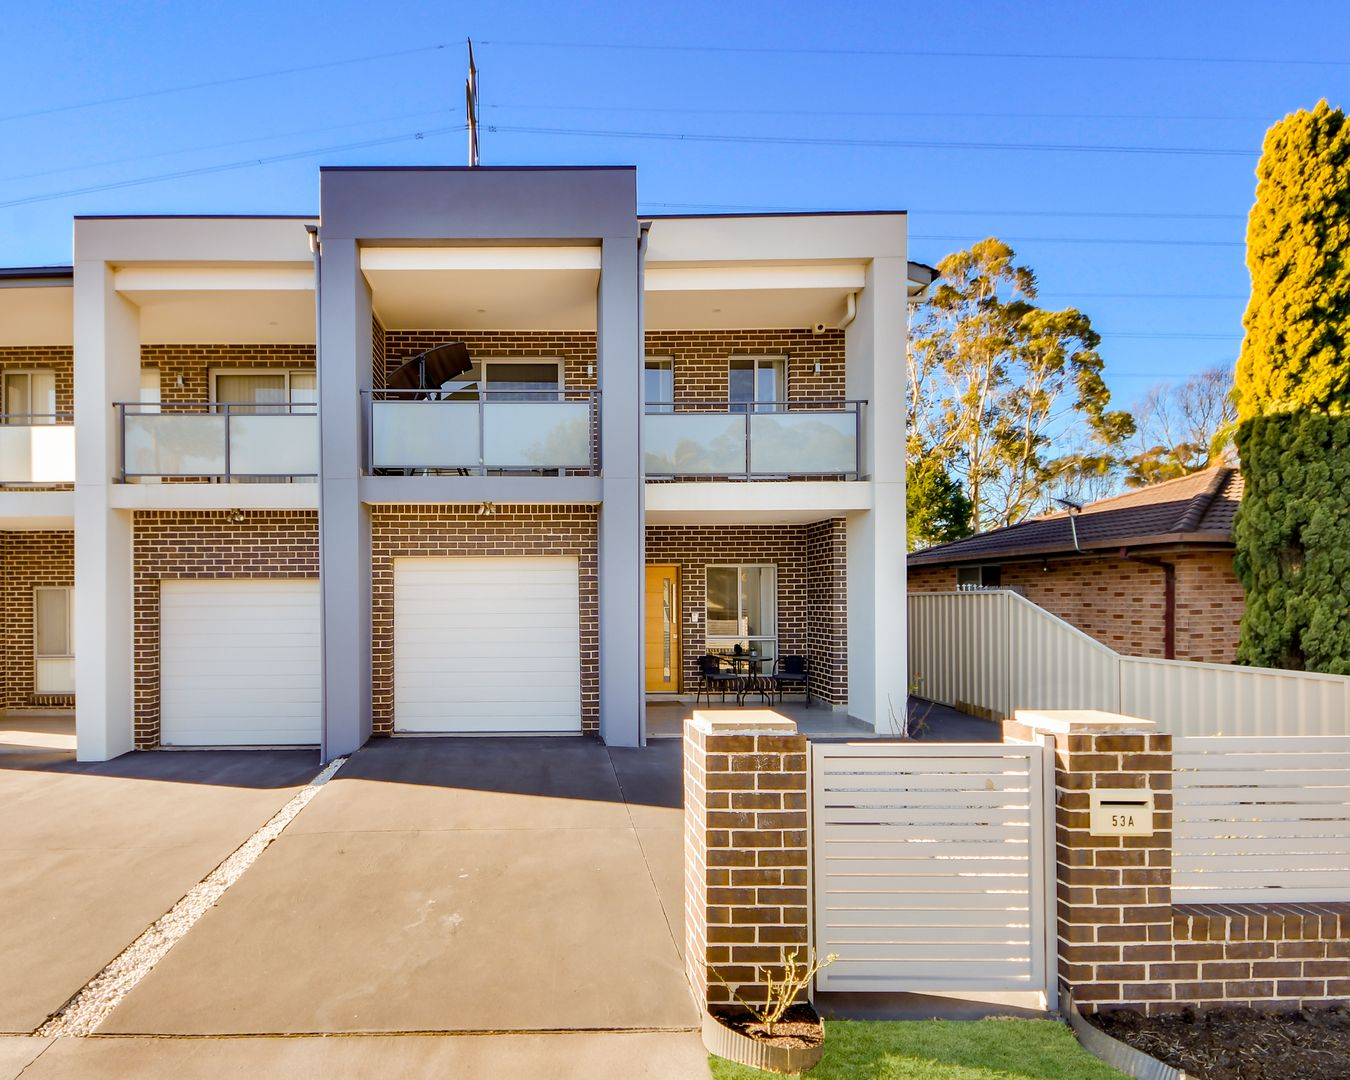 53a Haultain Street, Minto NSW 2566, Image 0